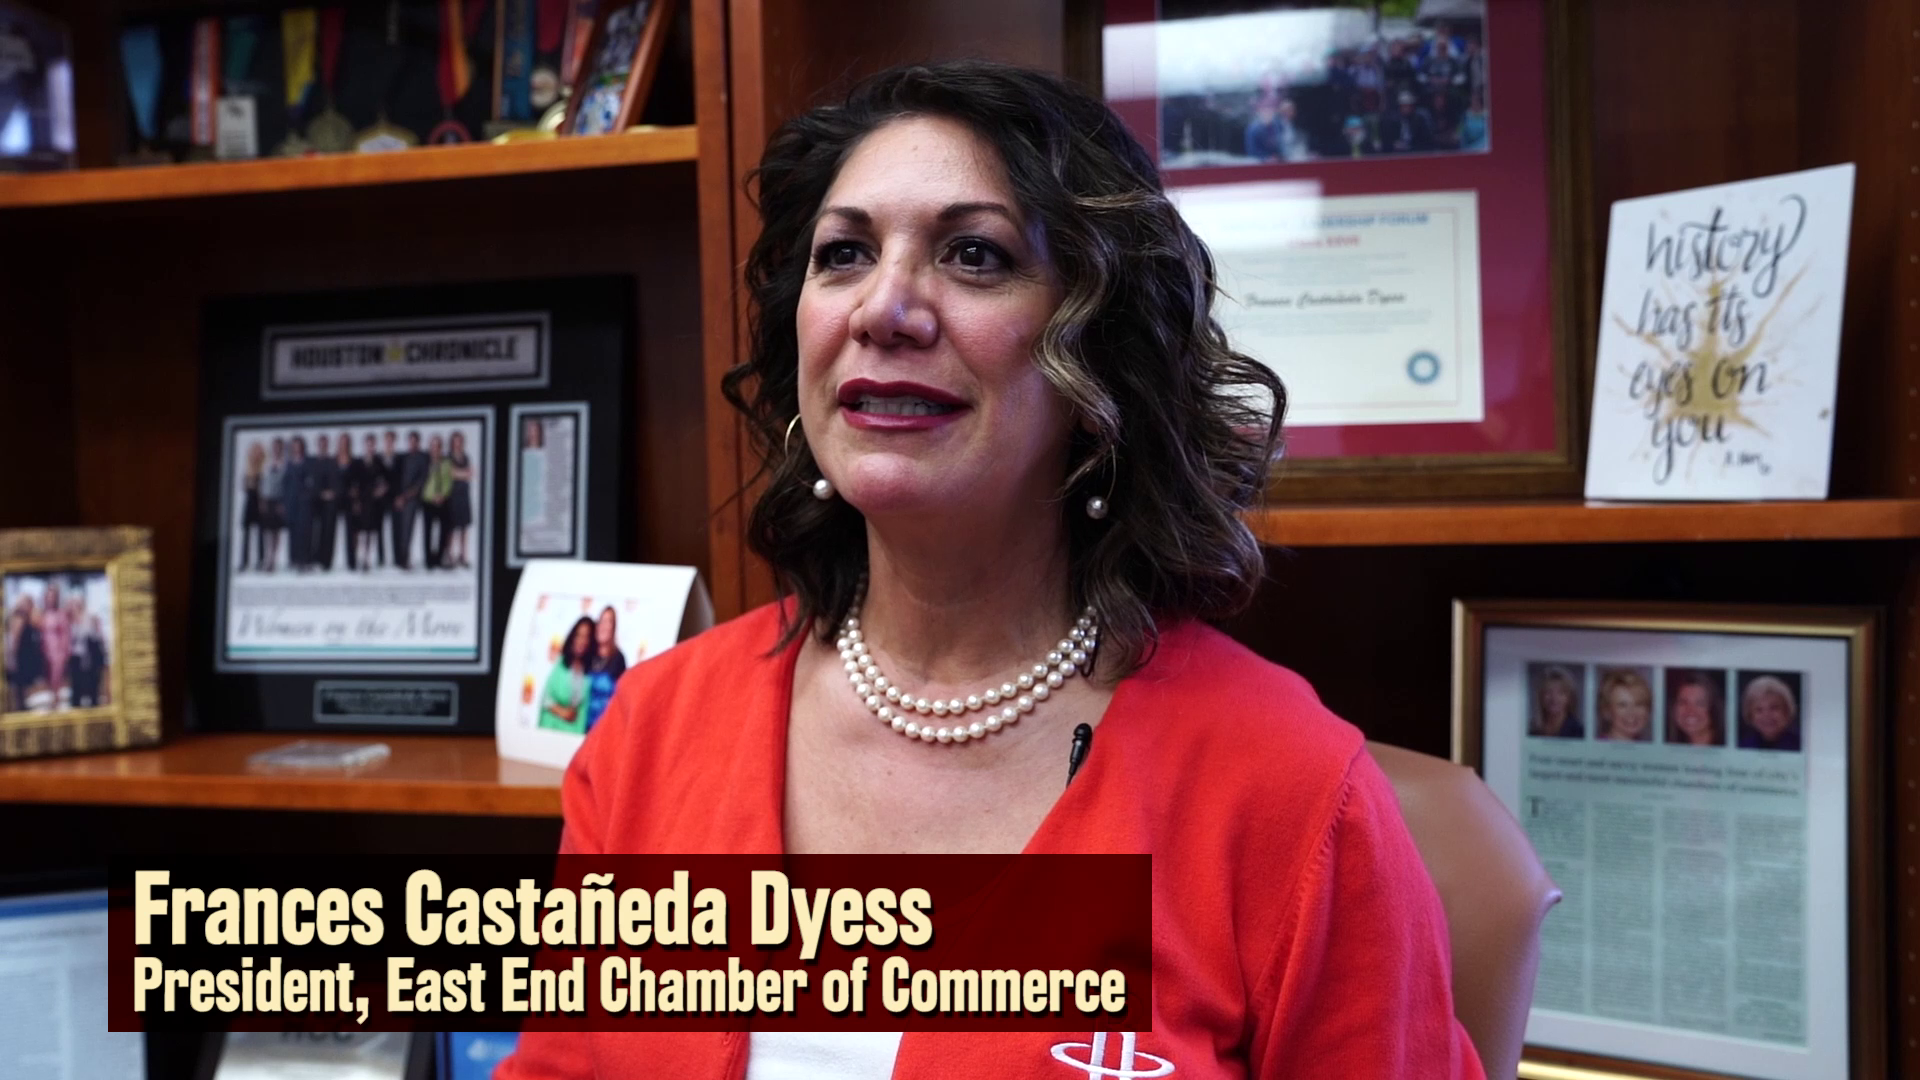 Noche Latina Recognition - Frances Castaneda Dyess